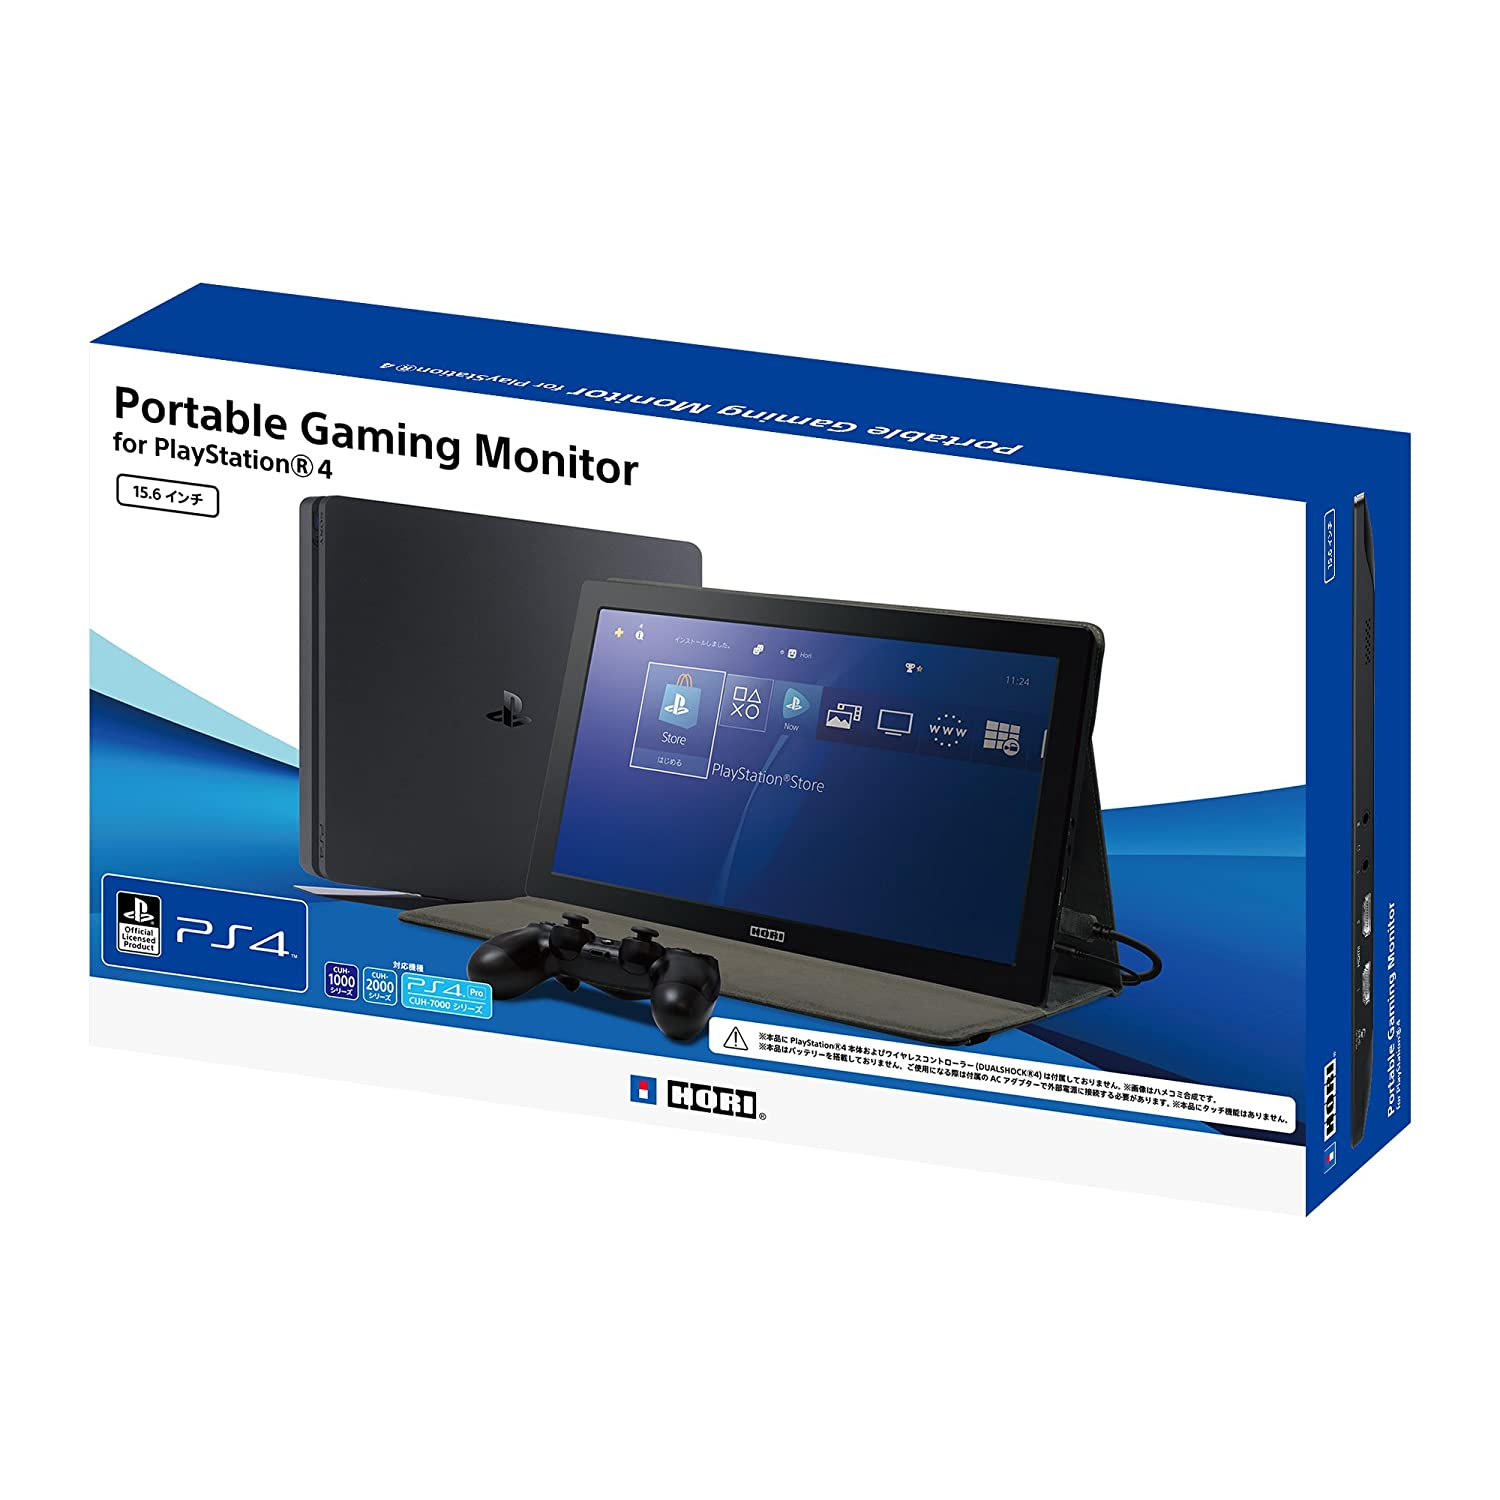 【SONYライセンス商品】Portable Gaming Monitor for PlayStation4【PS4対応】 B0746JNFNS